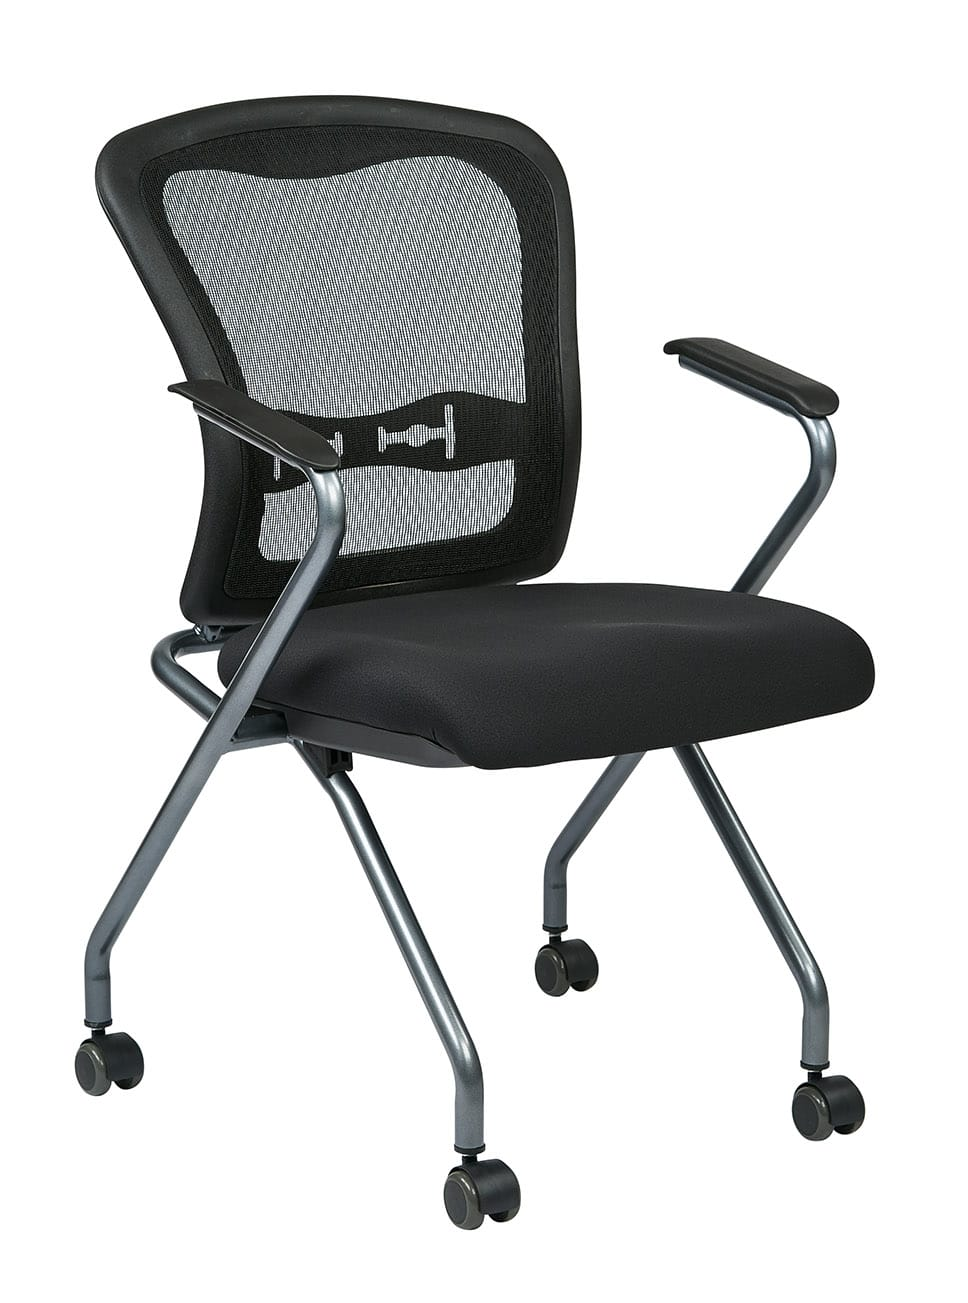 Deluxe Folding Chair With Progrid Back Pnp Office Furniture